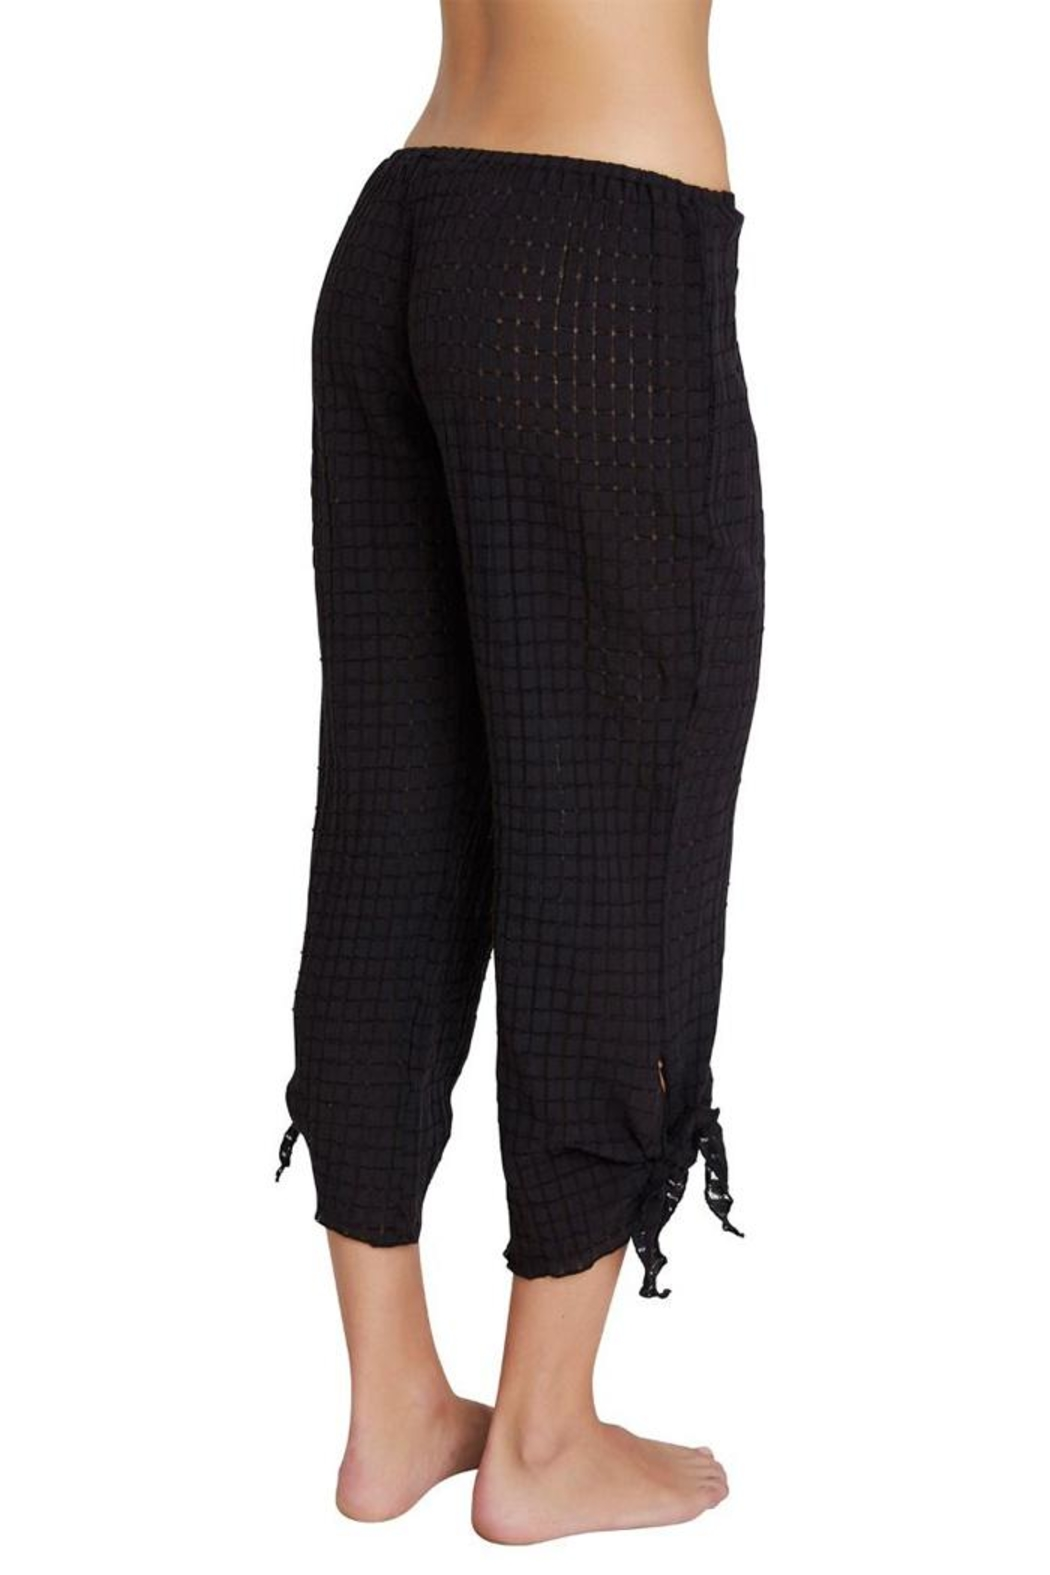 Eberjey Paz Knotted Pant - Side Cropped Image